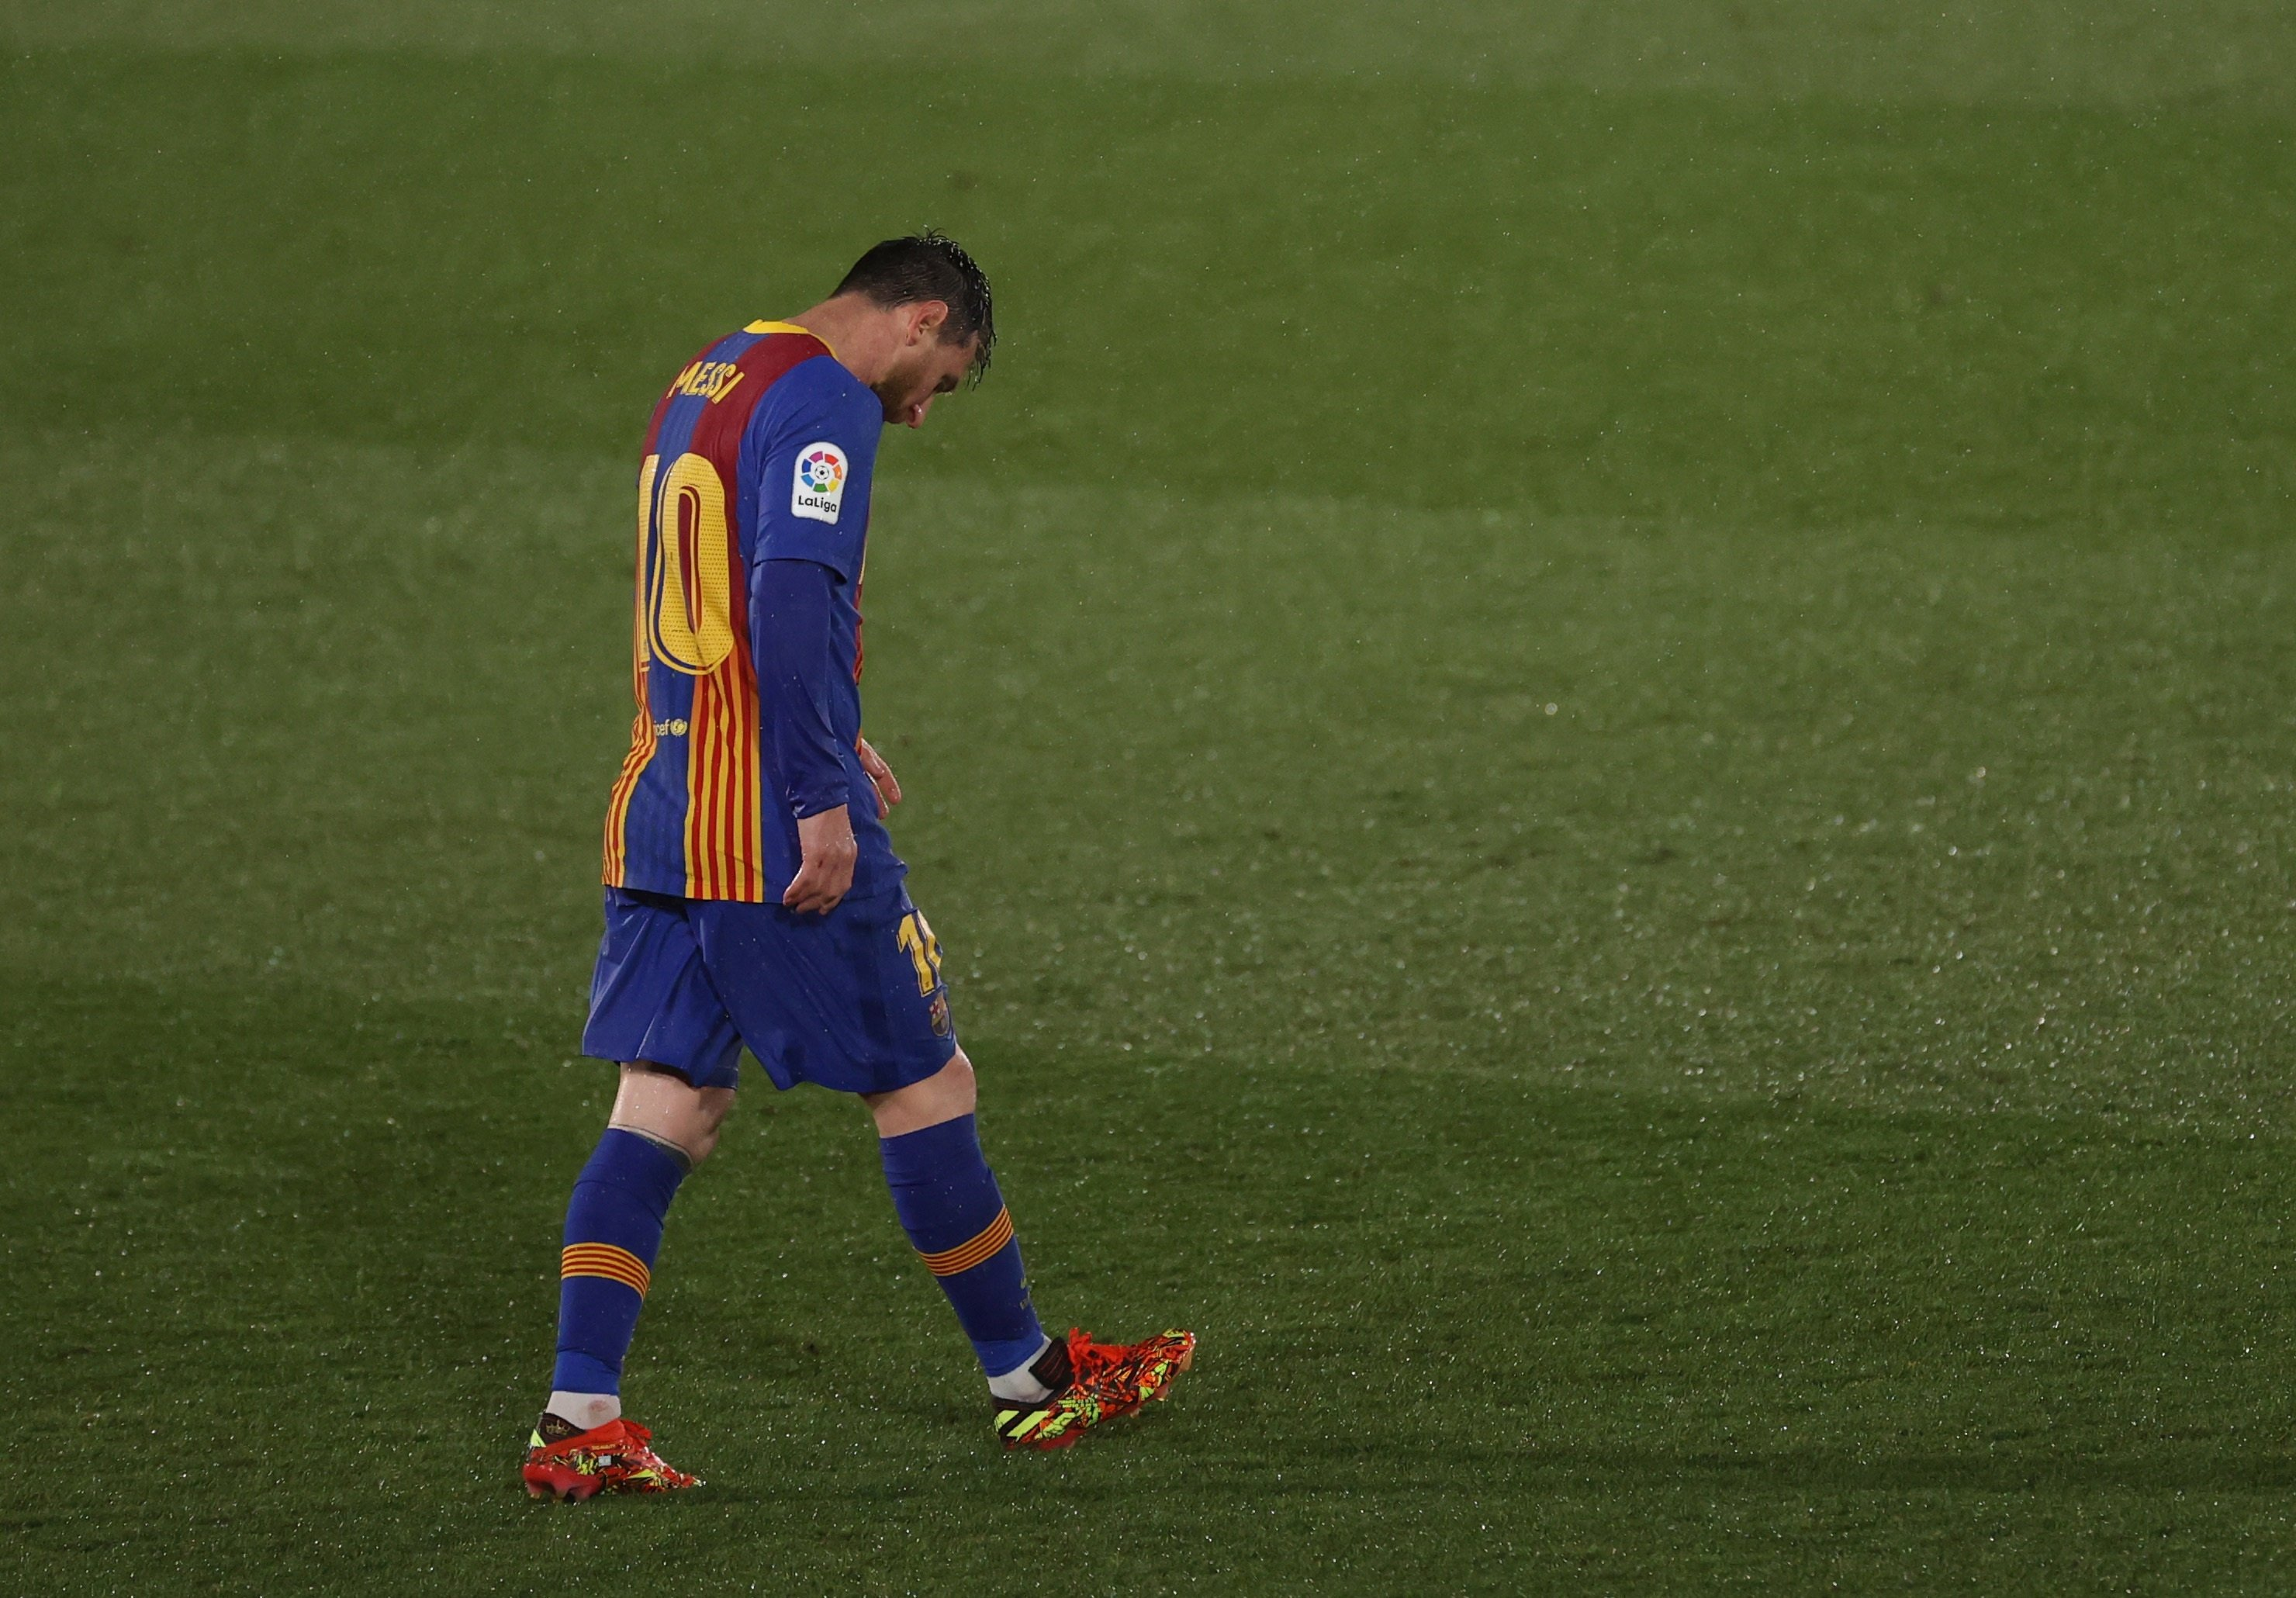 Messi S Barcelona Contract Expires Making Him A Free Agent Daily Sabah